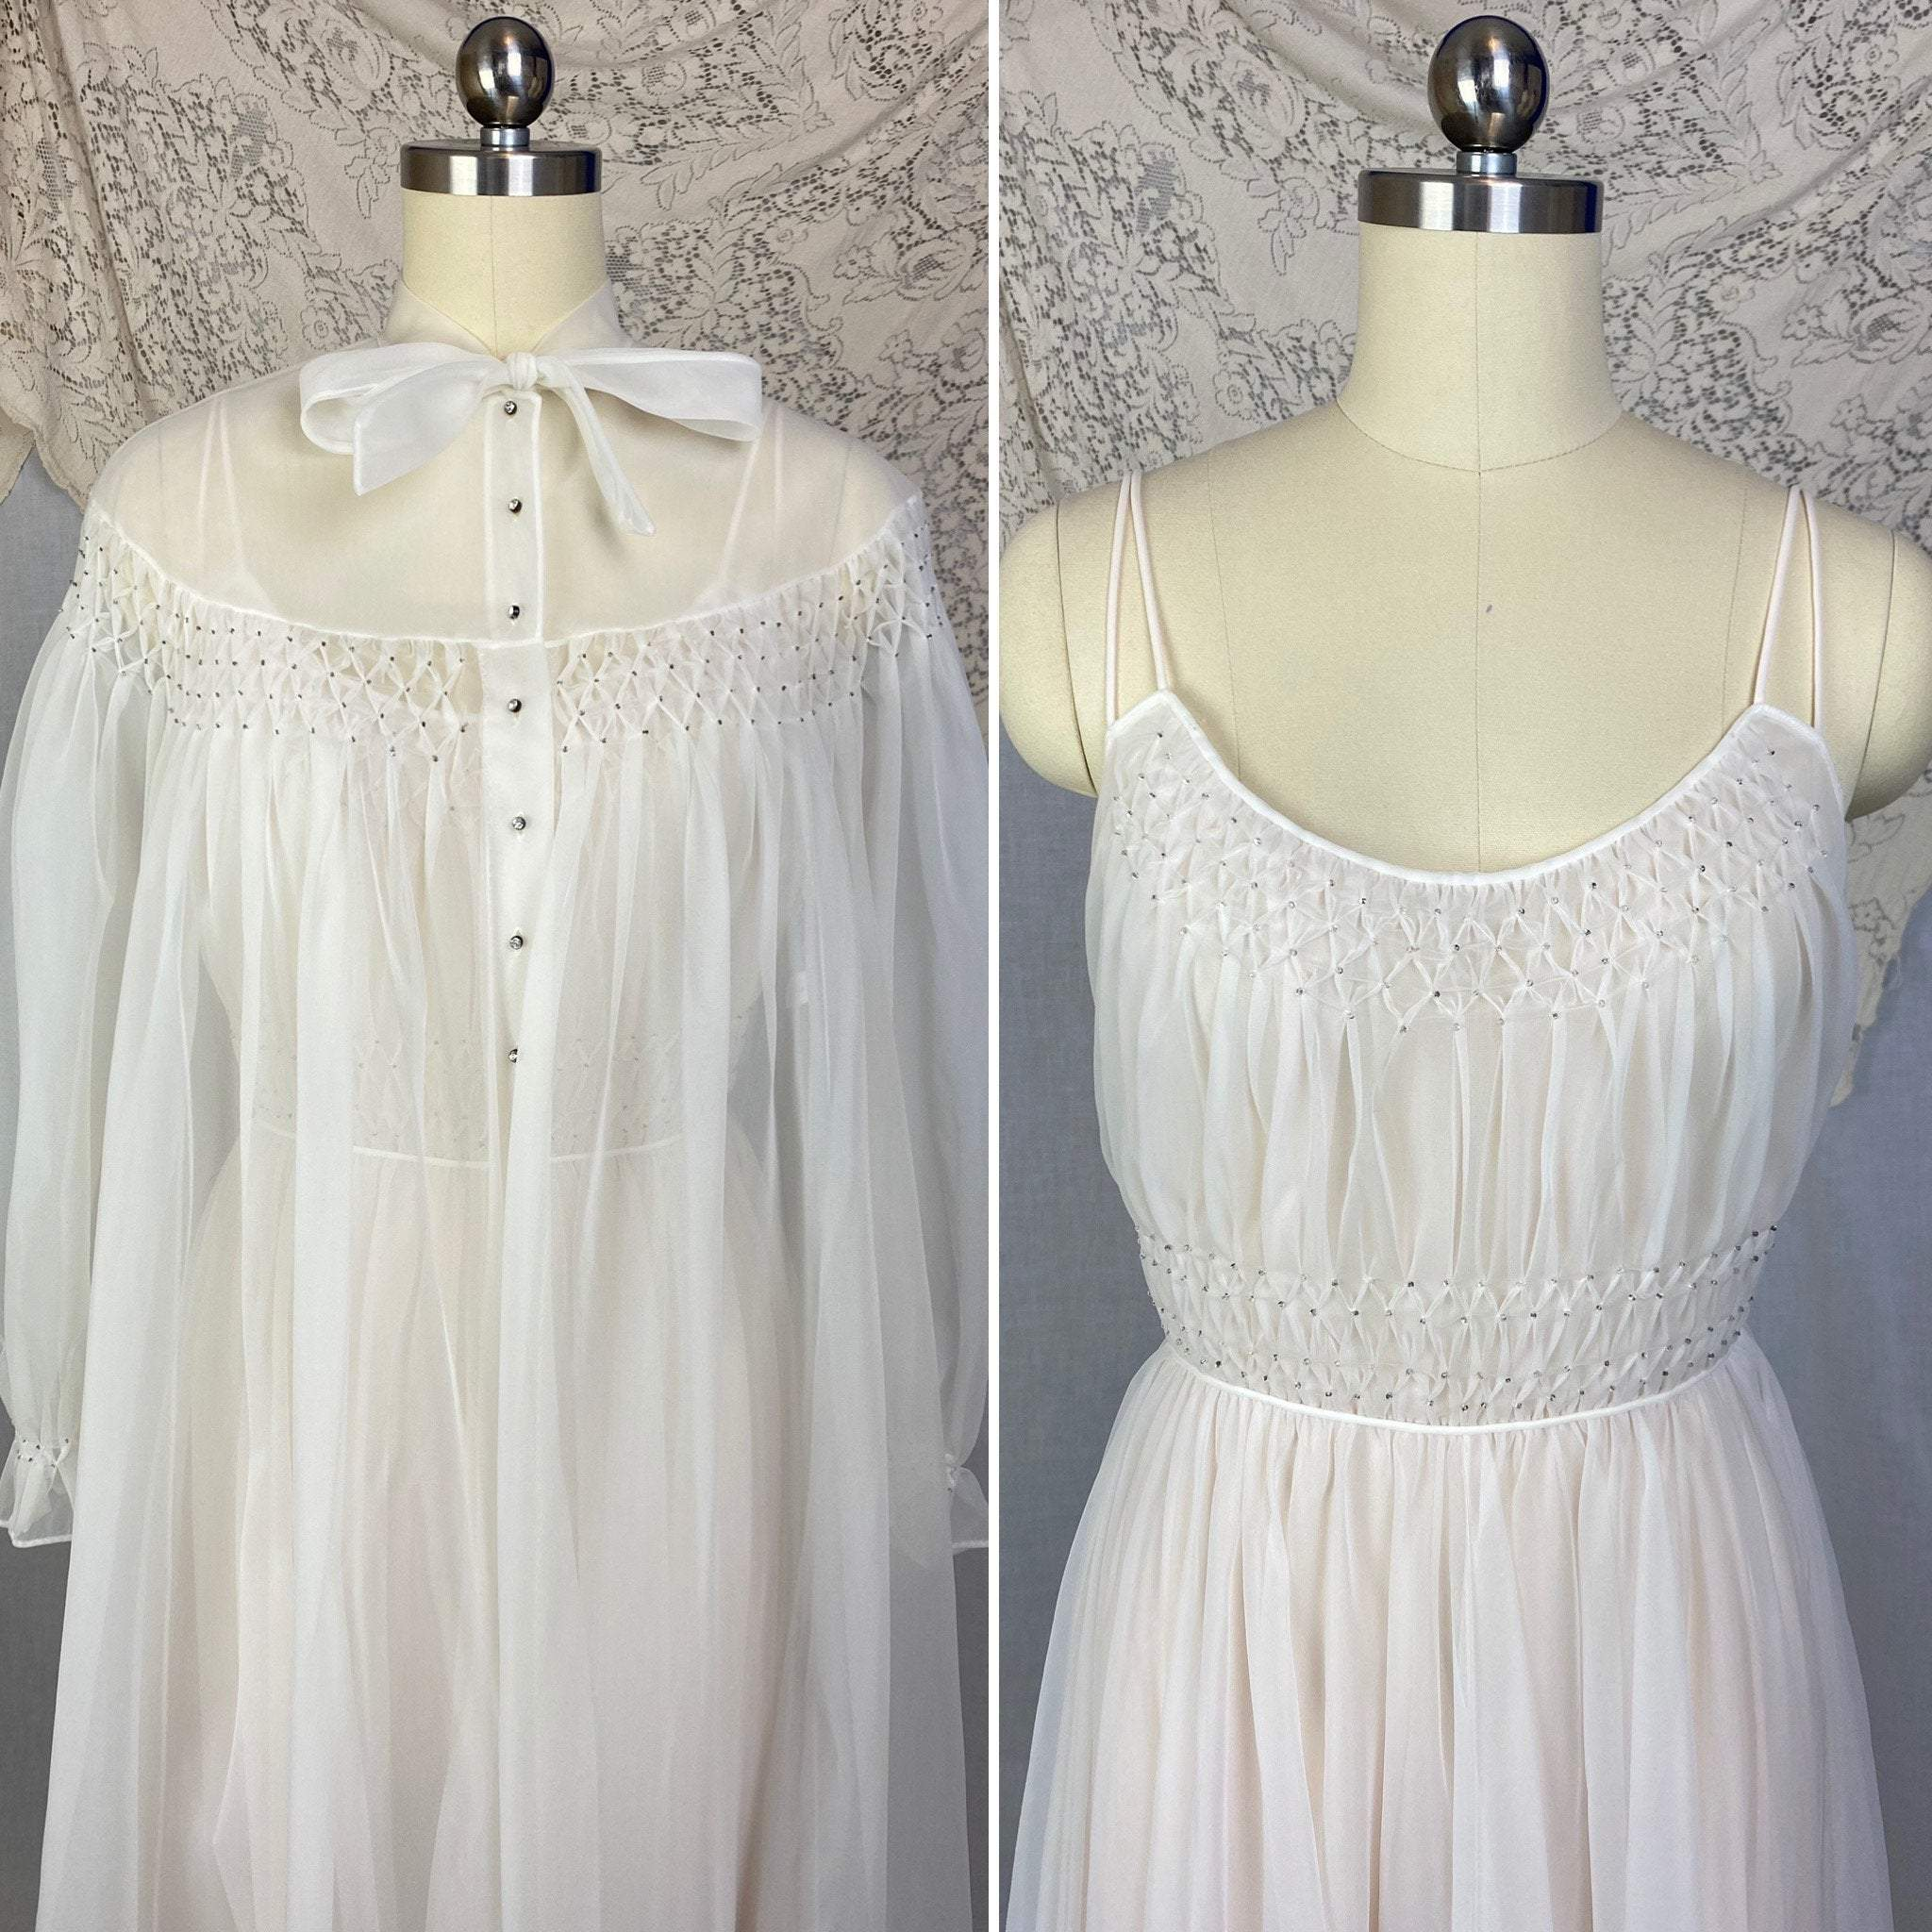 Vintage 1950's Peignoir Set | Winter White Nylon Chiffon with Honeycomb Smocking & Rhinestone Buttons | Size XS | Vanity Fair - Daggers & Dames